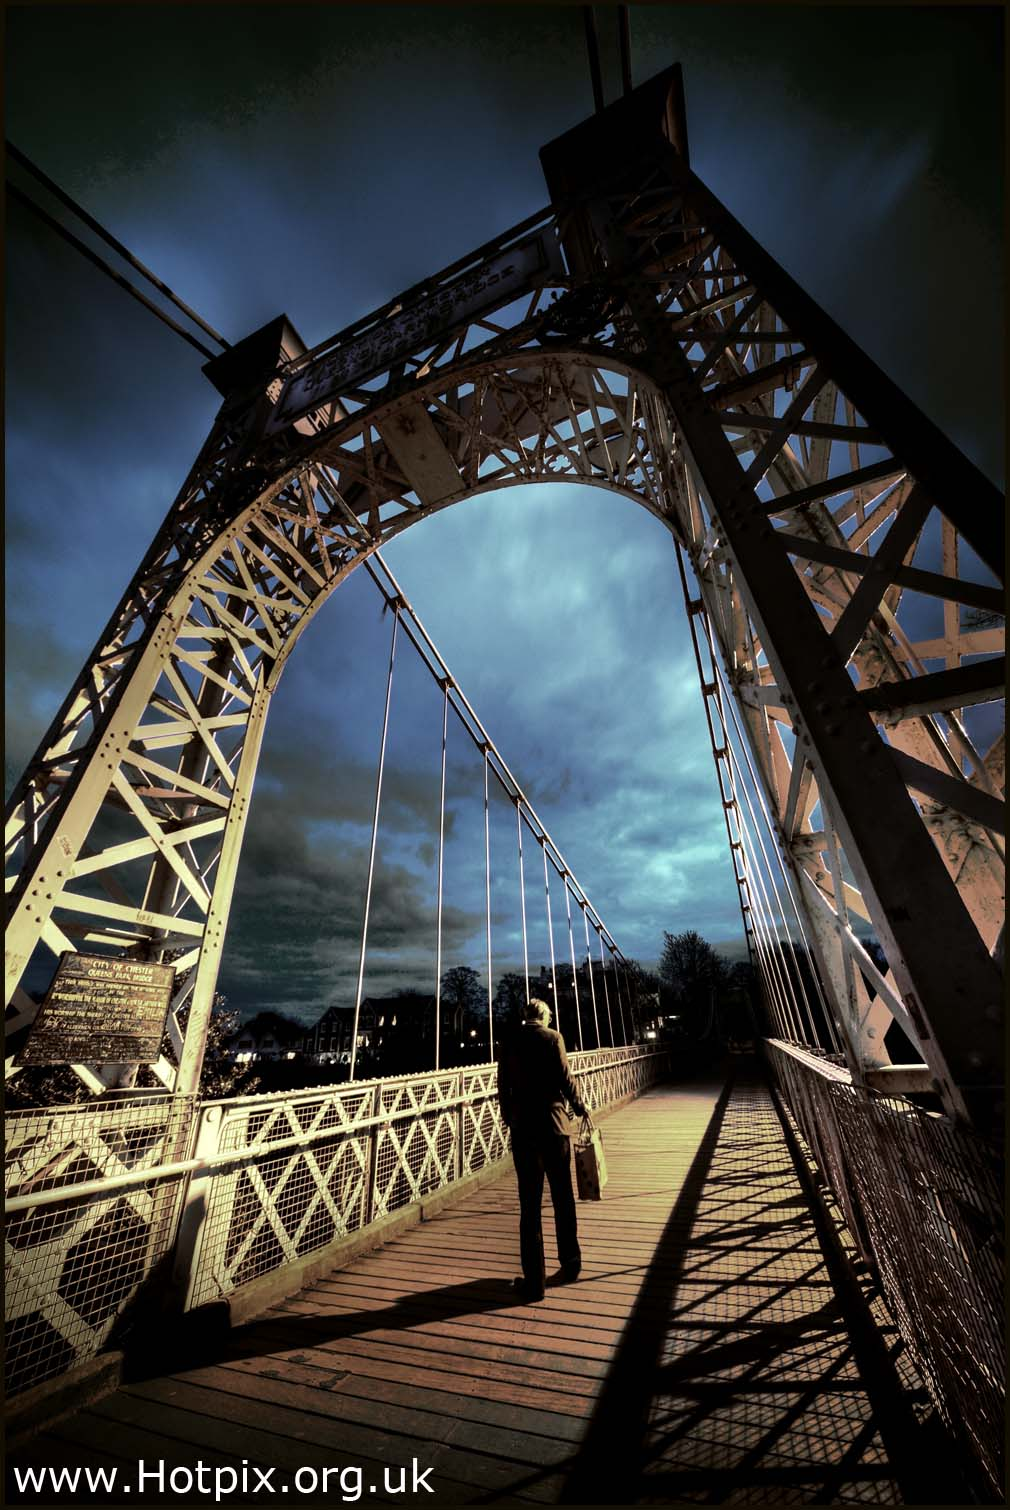 person,bridge,night,dusk,tripod,blue,sky,light,lighting,low,contrast,man,walking,chester,cheshire,uk,britain,wall,walled,city,town,condate,tonysmith,hotpix,hotpixuk,sinister,dramatic,extreme,dark,disturbia,hotpics,hotpic,hotpick,hotpicks,interesting,place,places,abstract,art,arty,architecture,building,buildings,stream,lightstream,famous,bridges,pedestrian,foot,pont,pied,wide,angle,wideangle,lens,sigma,12-24mm,10-20mm,metal,Alamy